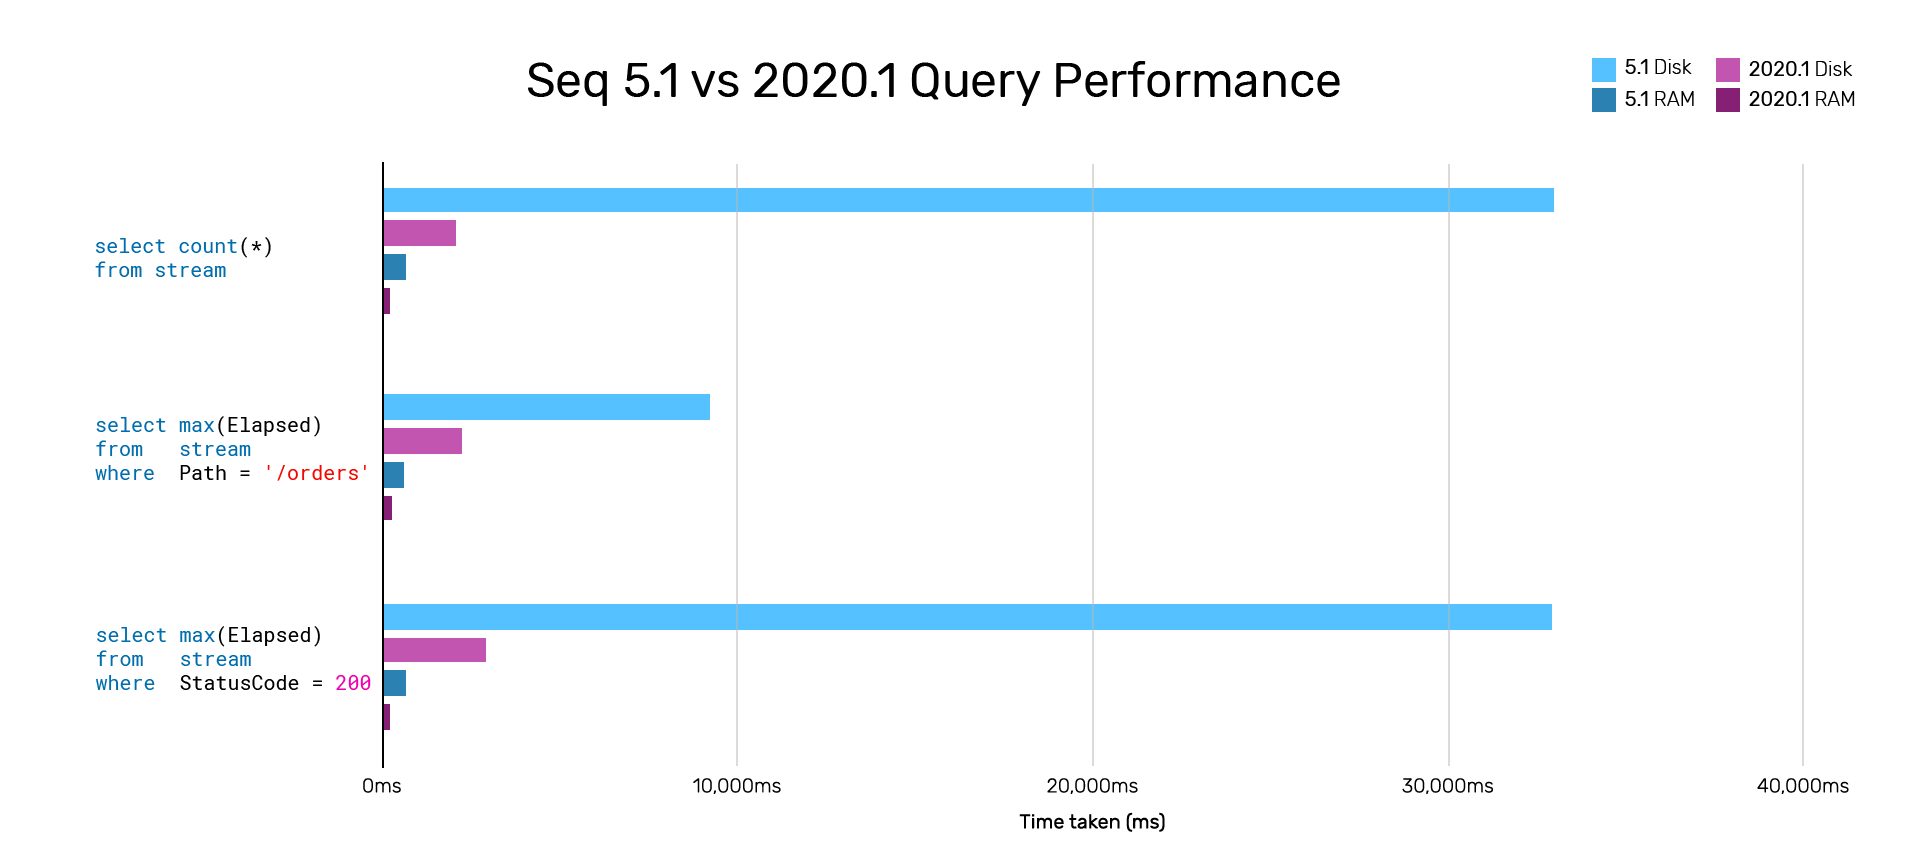 There is a 4-10x gain in query performance between Seq 5.1 and Seq 2020.1 query engines, with some queries taking over 34 seconds in 5.1, now taking less than 3 seconds in 2020.1.